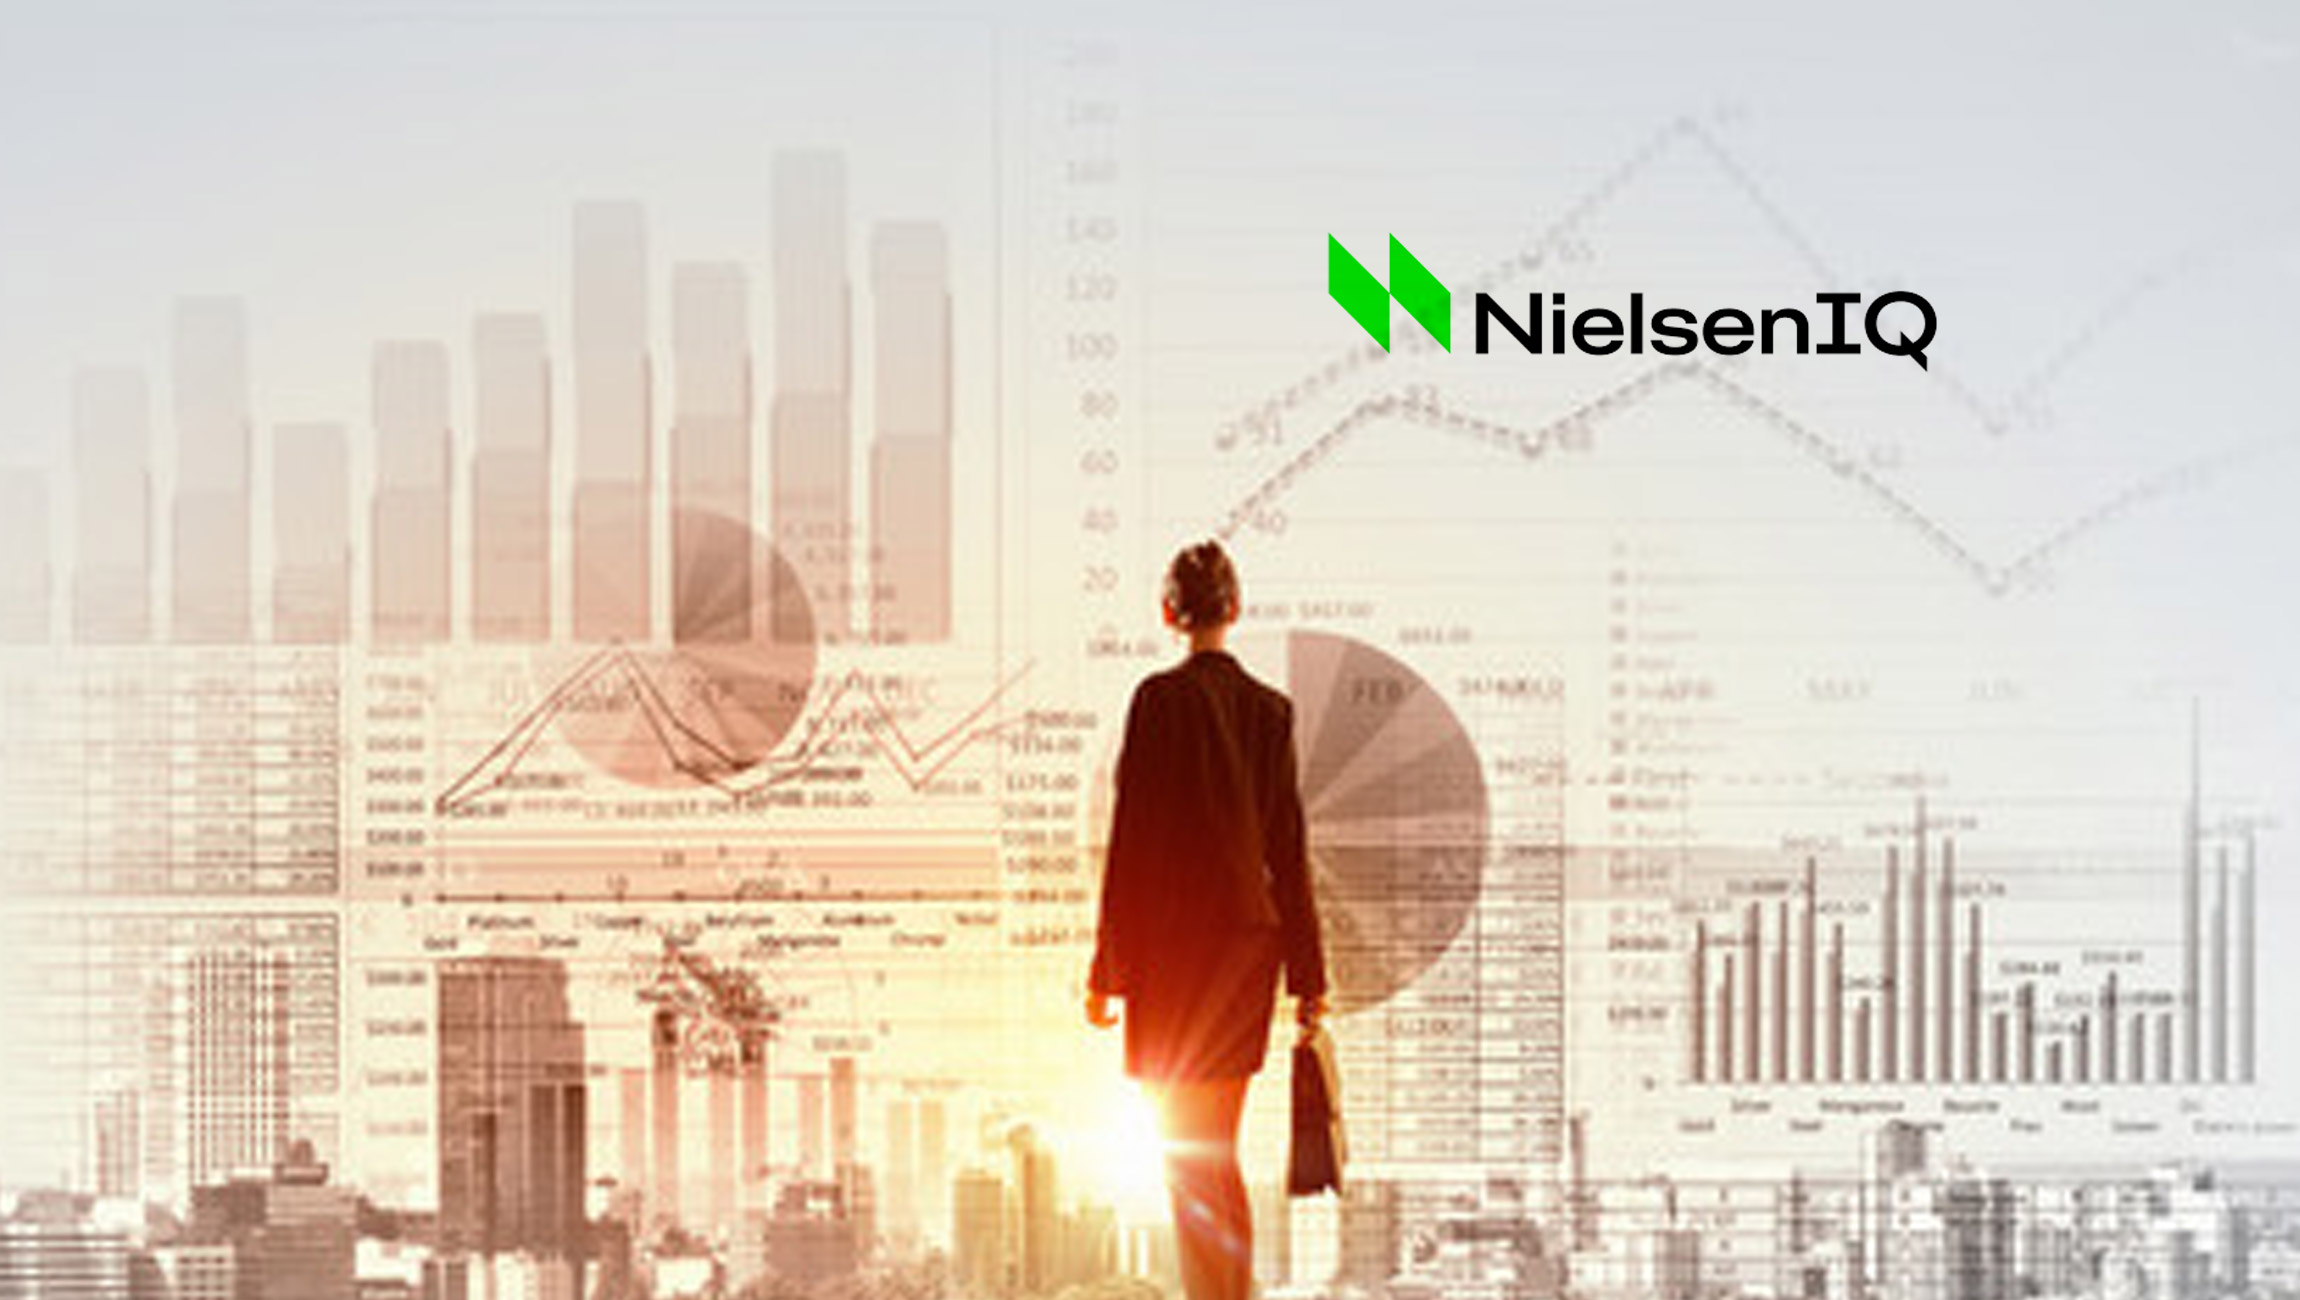 NielsenIQ Launches Retail Analytics for Small CPG Brands